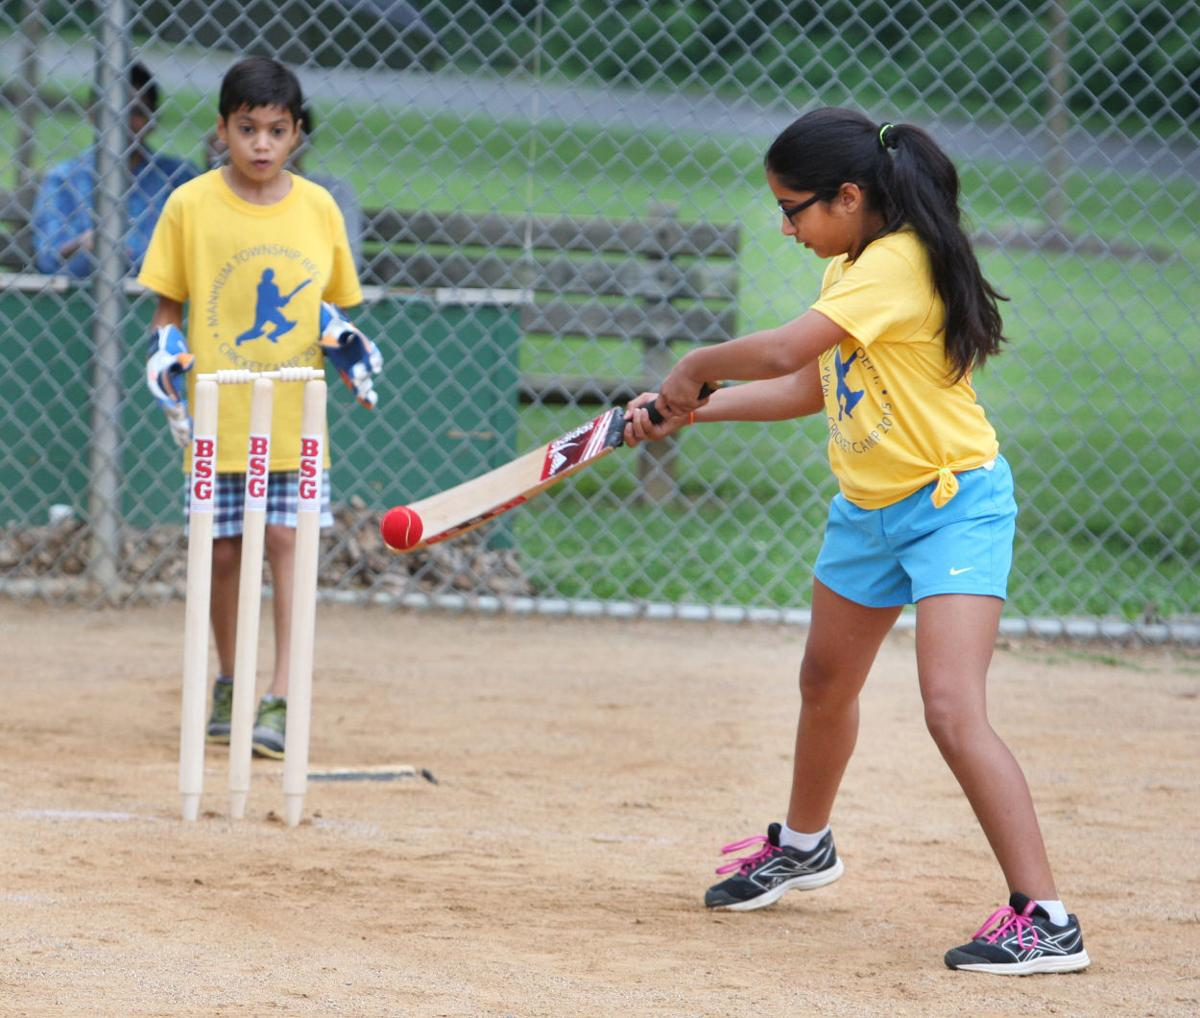 5 important differences between cricket and baseball   Local